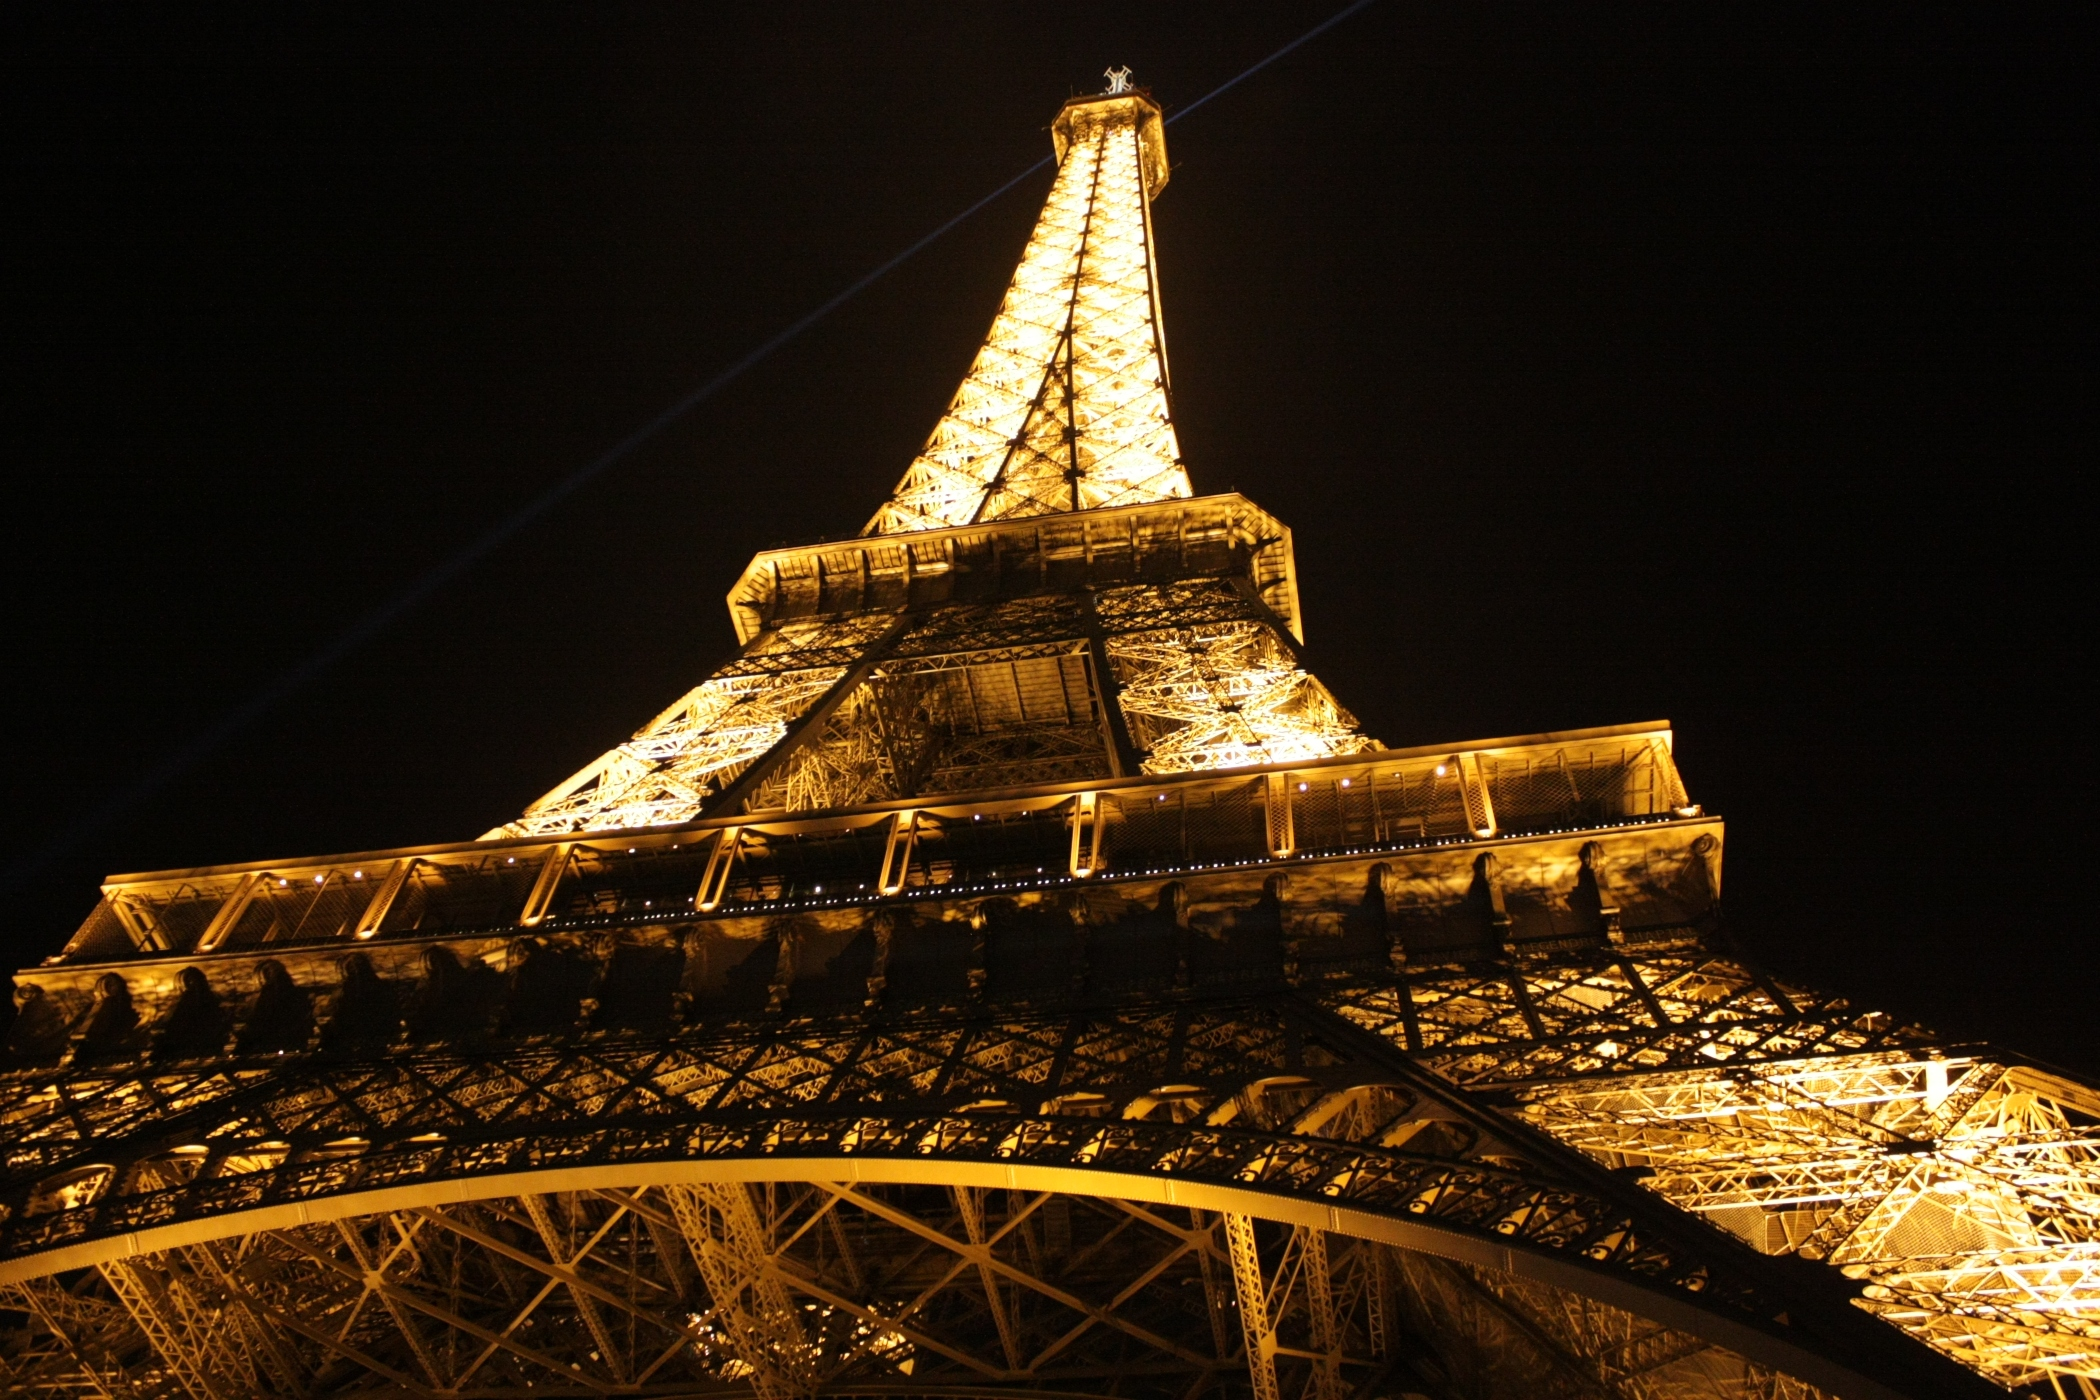 Eiffel Tower at night with lights